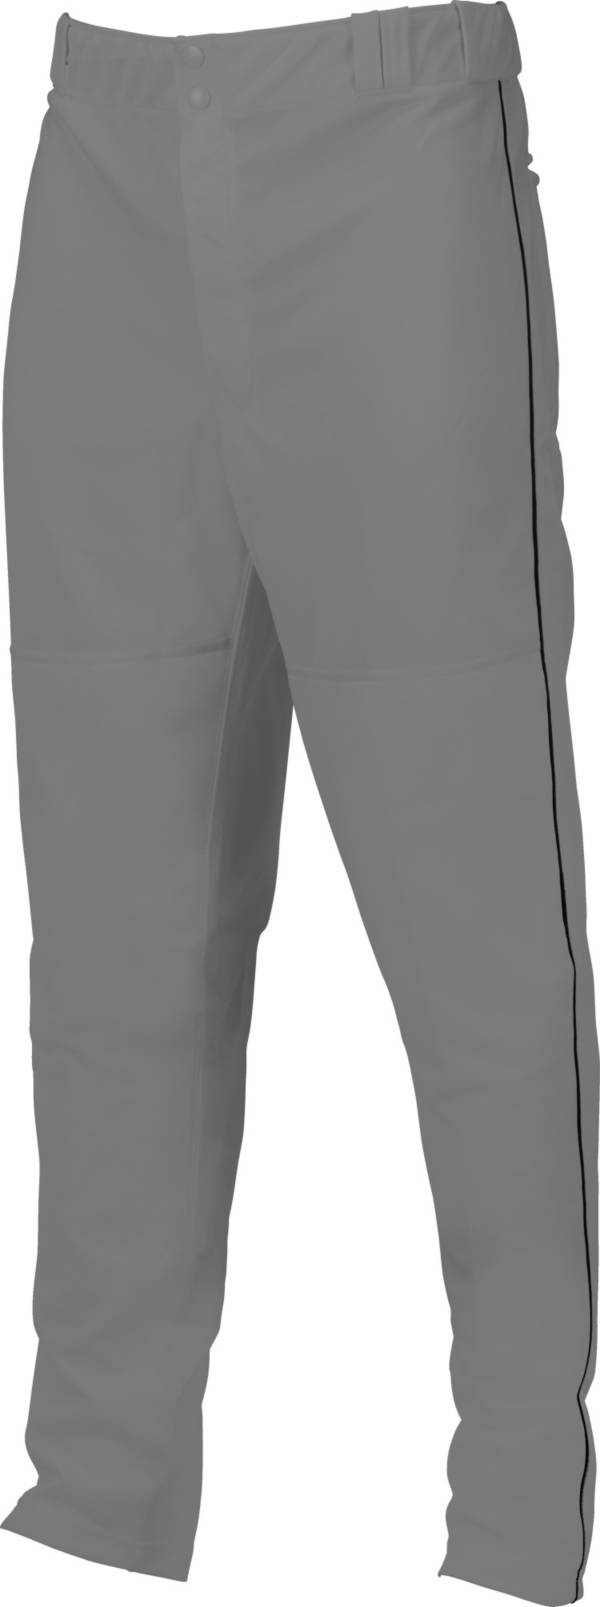 Marucci Boys' Double Knit Piped Baseball Pants product image